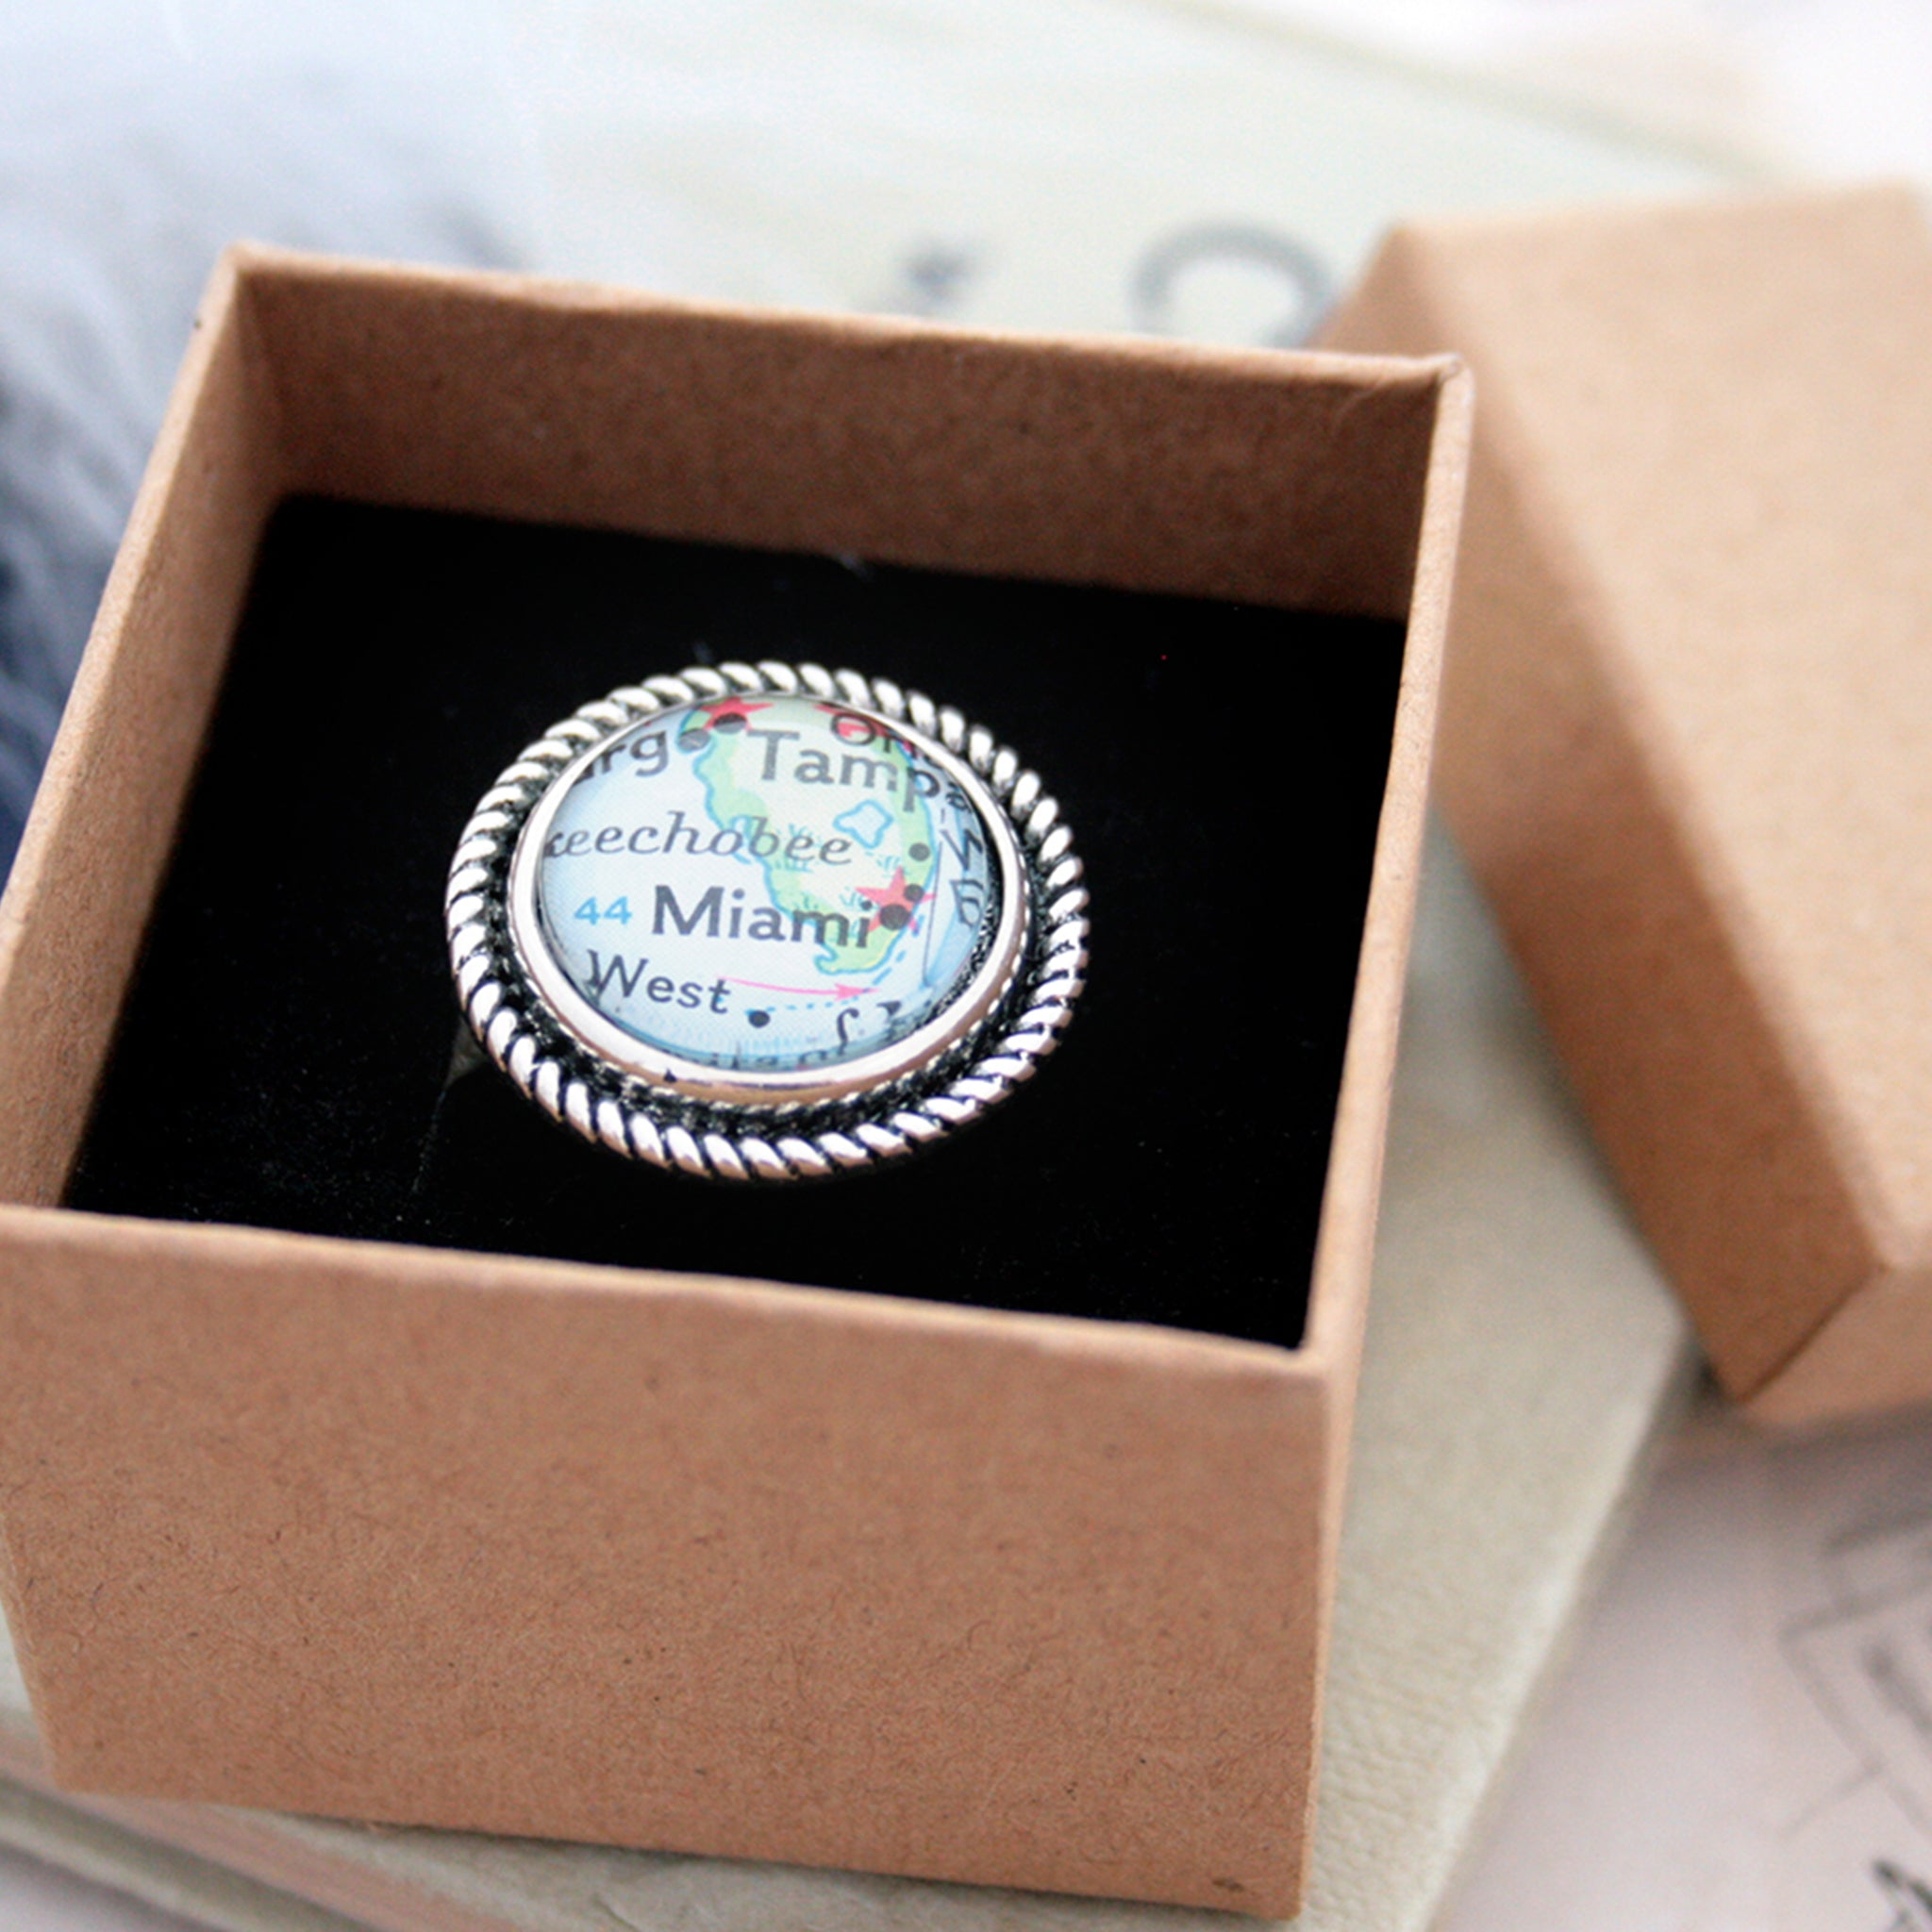 Silver tone ring with rope pattern featuring map of Miami in a box